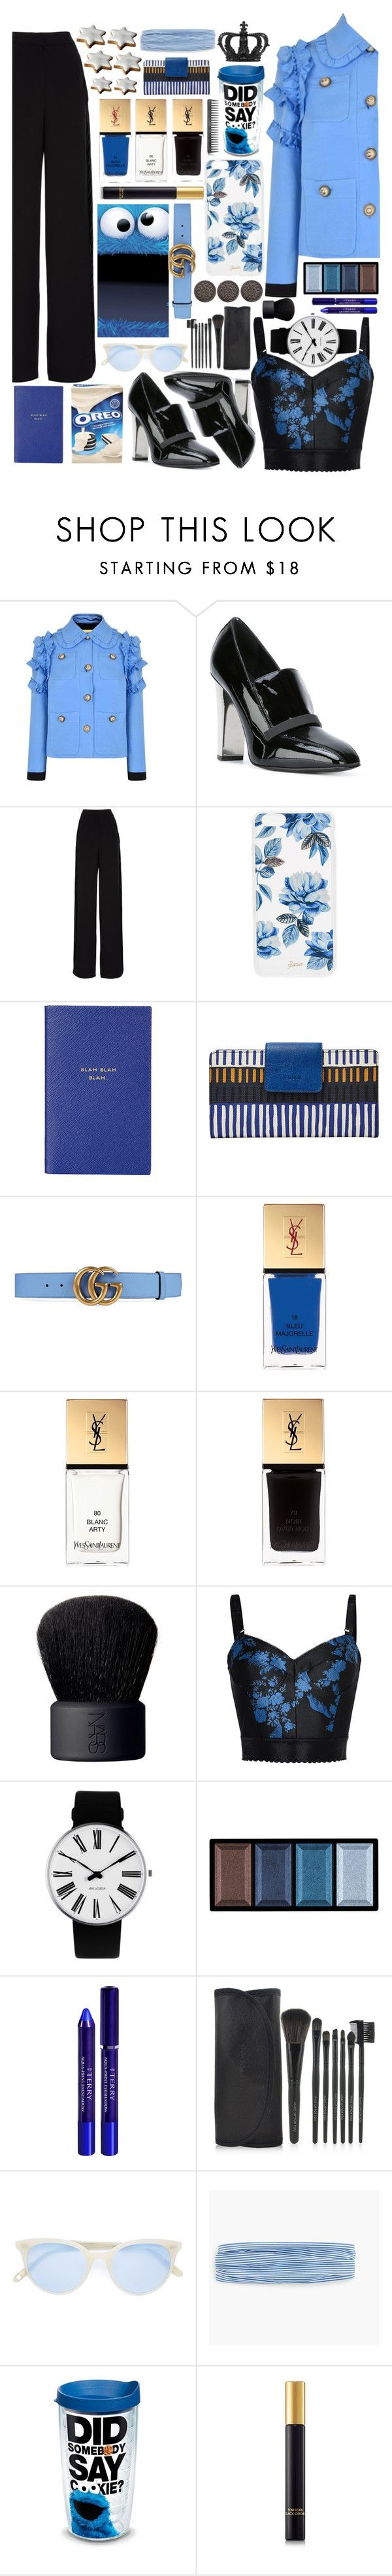 """Cookie Monsters Love Fashion too,"" by kleasterling ❤ liked on Polyvore featuring Gucci, Giuseppe Zanotti, Rochas, Sonix, Smythson, FOSSIL, Yves Saint Laurent, NARS Cosmetics, STELLA McCARTNEY and Rosendahl"